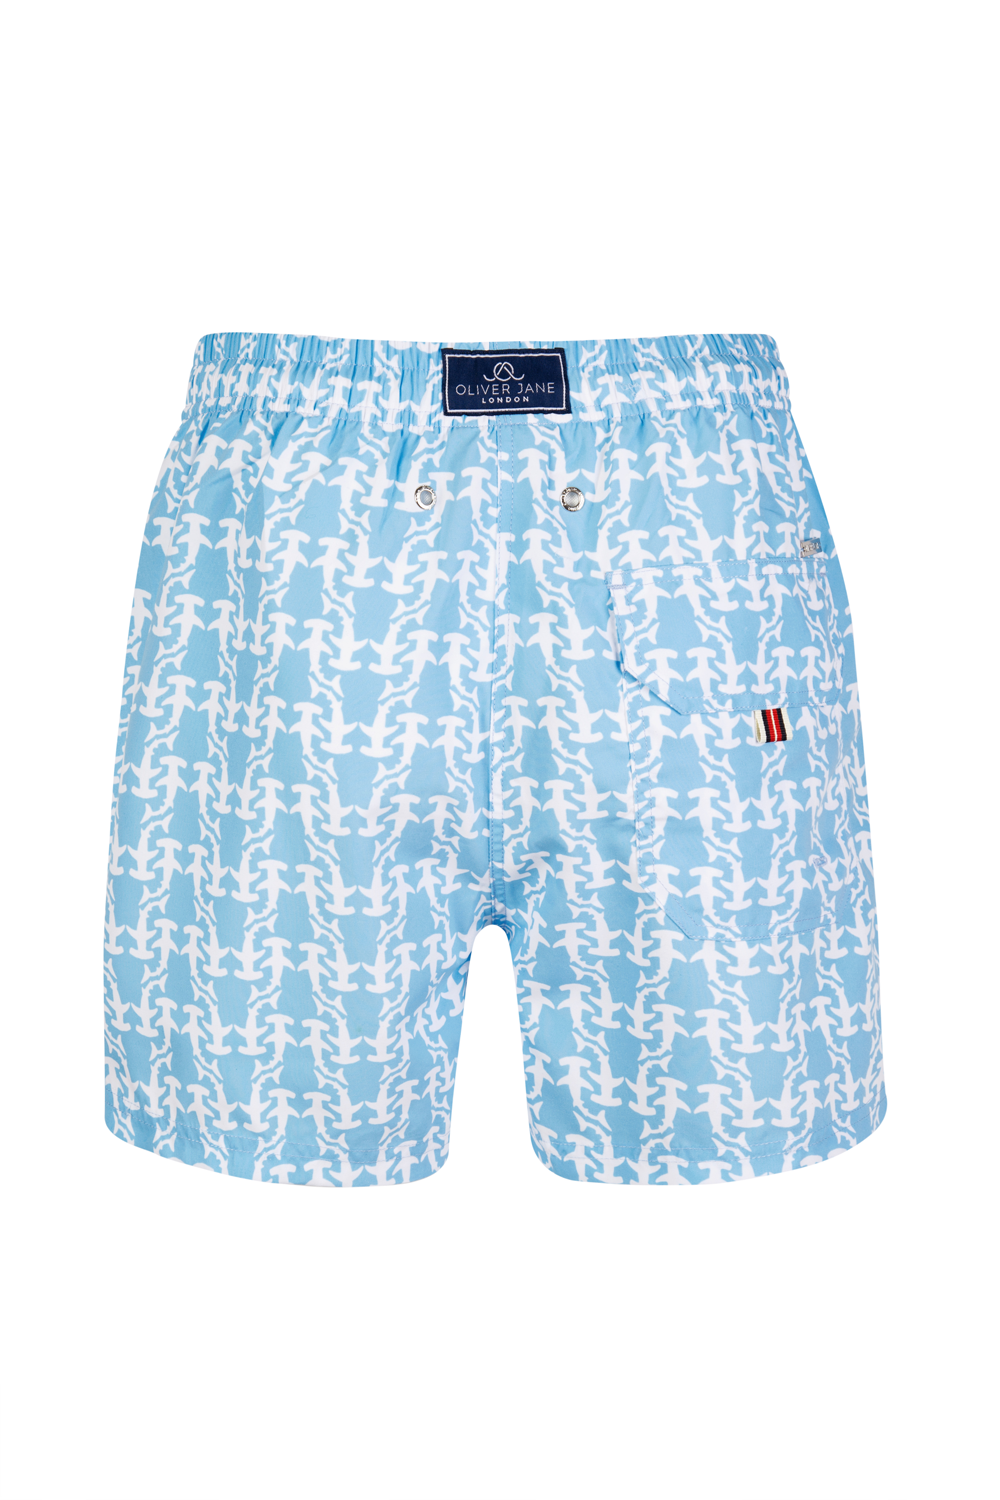 The Blue Hammerhead Shark Swim Shorts